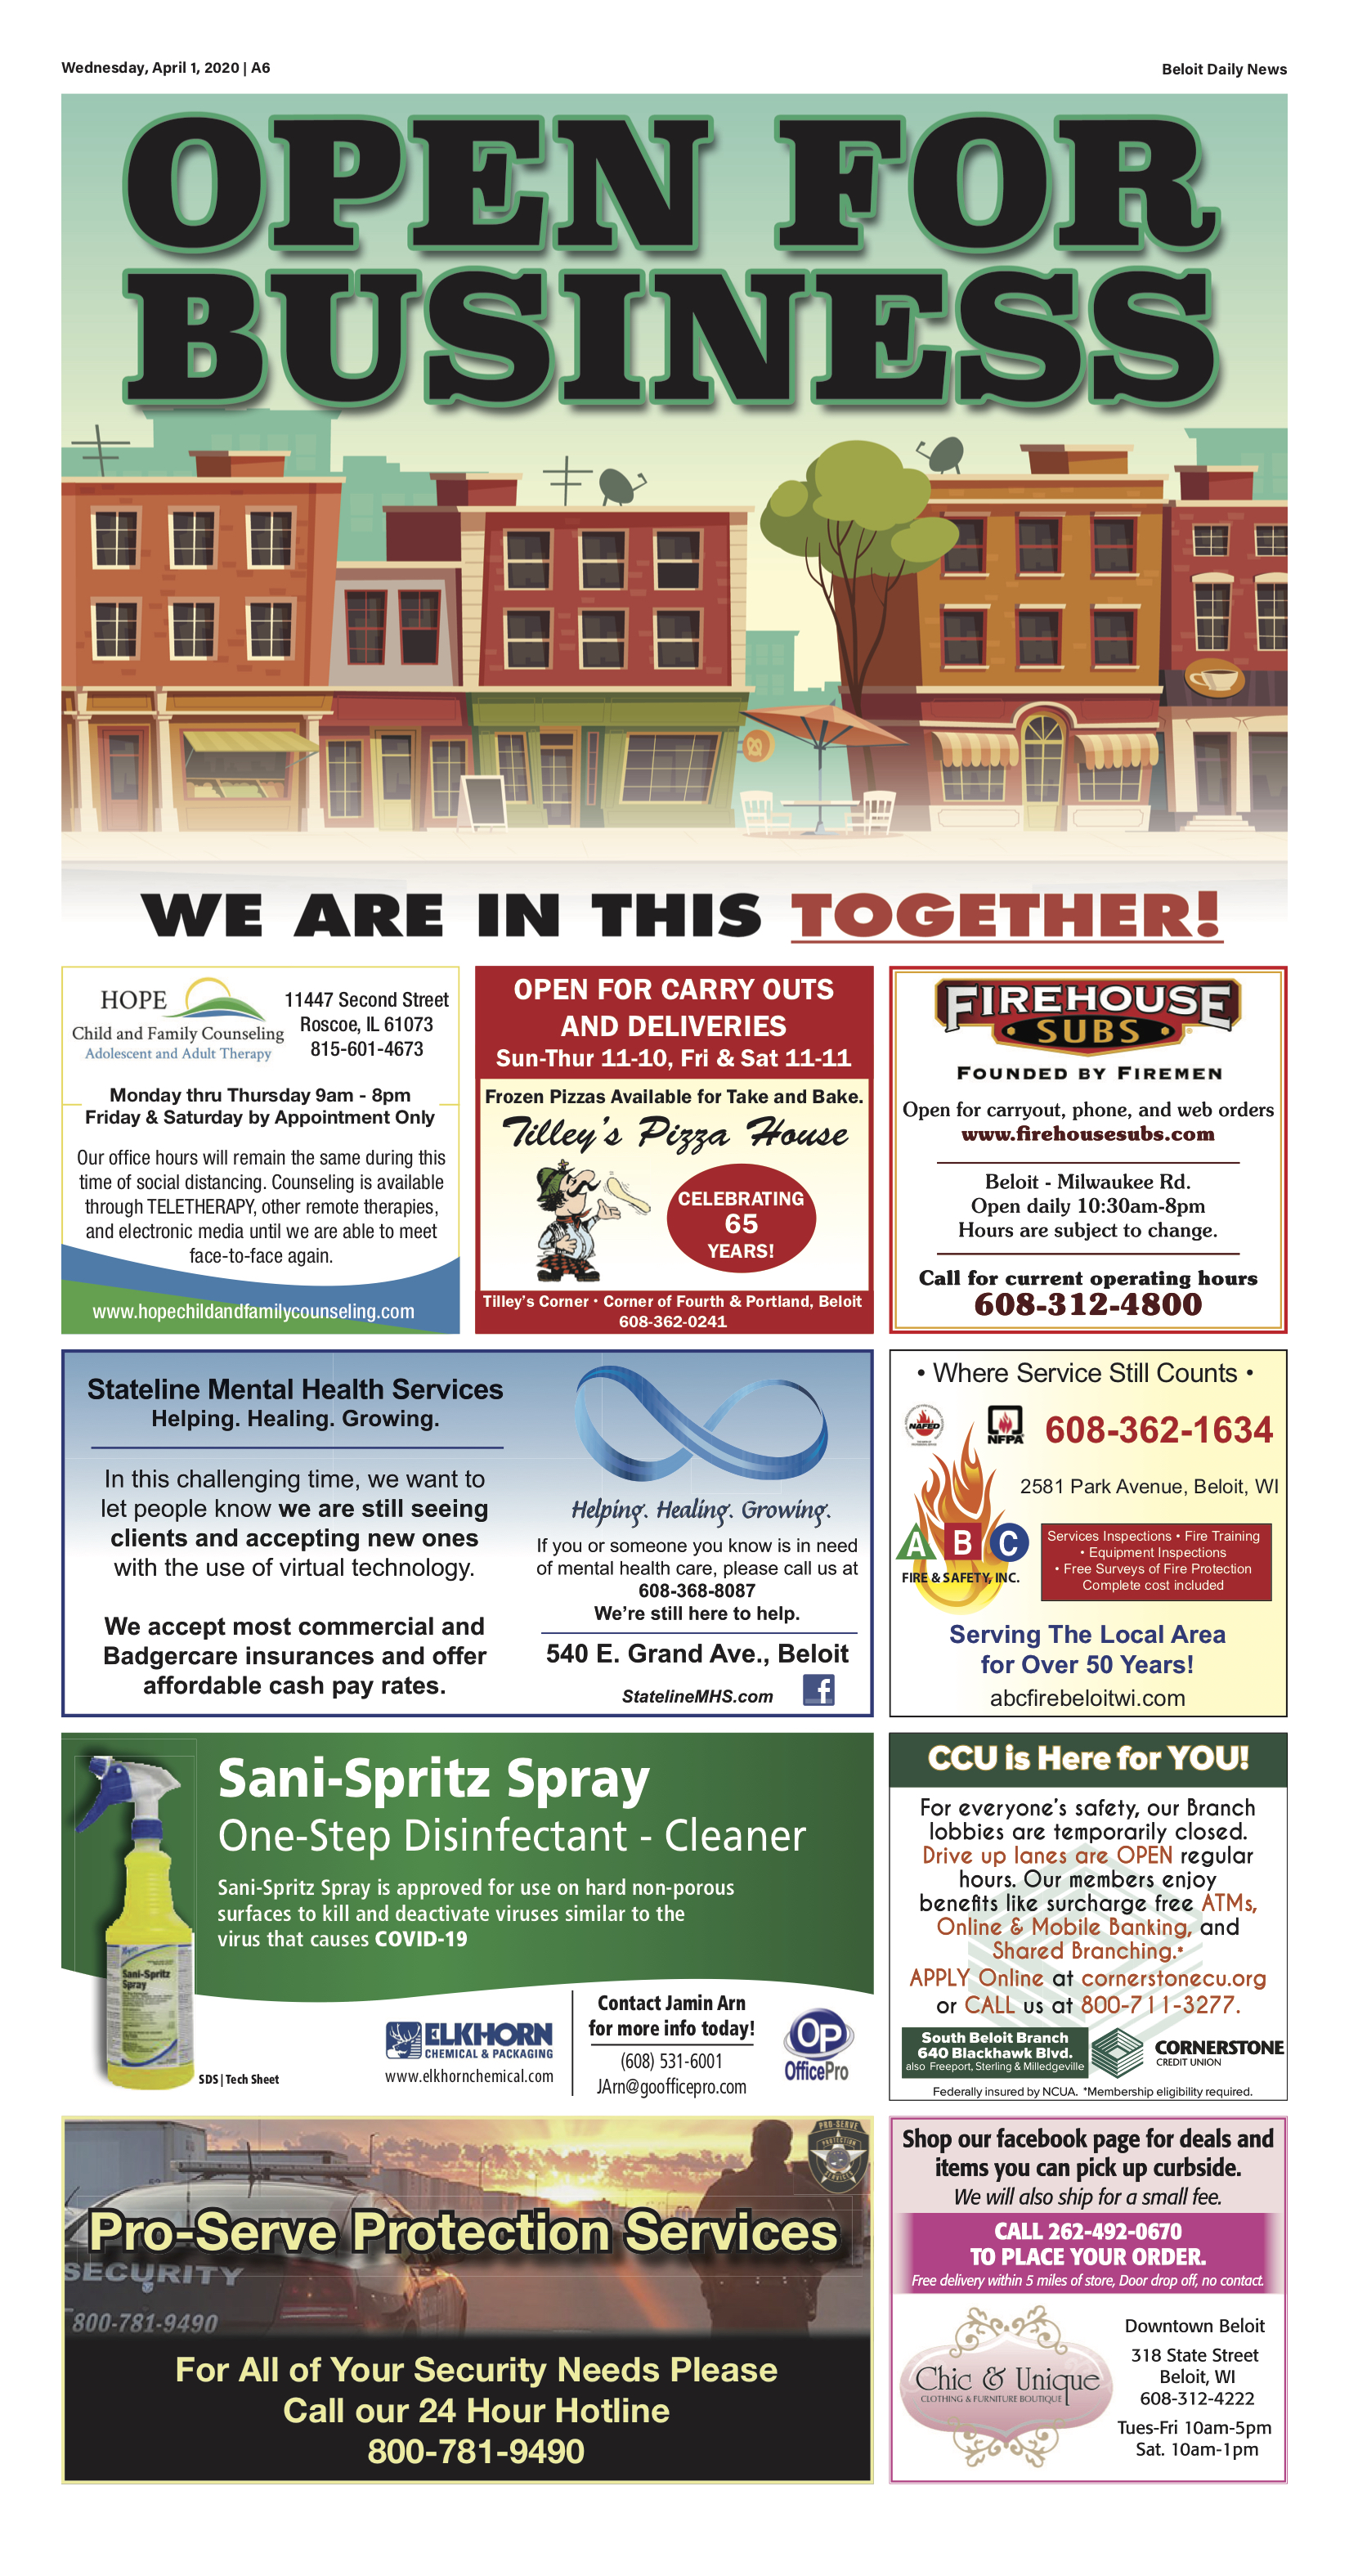 Open for Business Advertiser Page